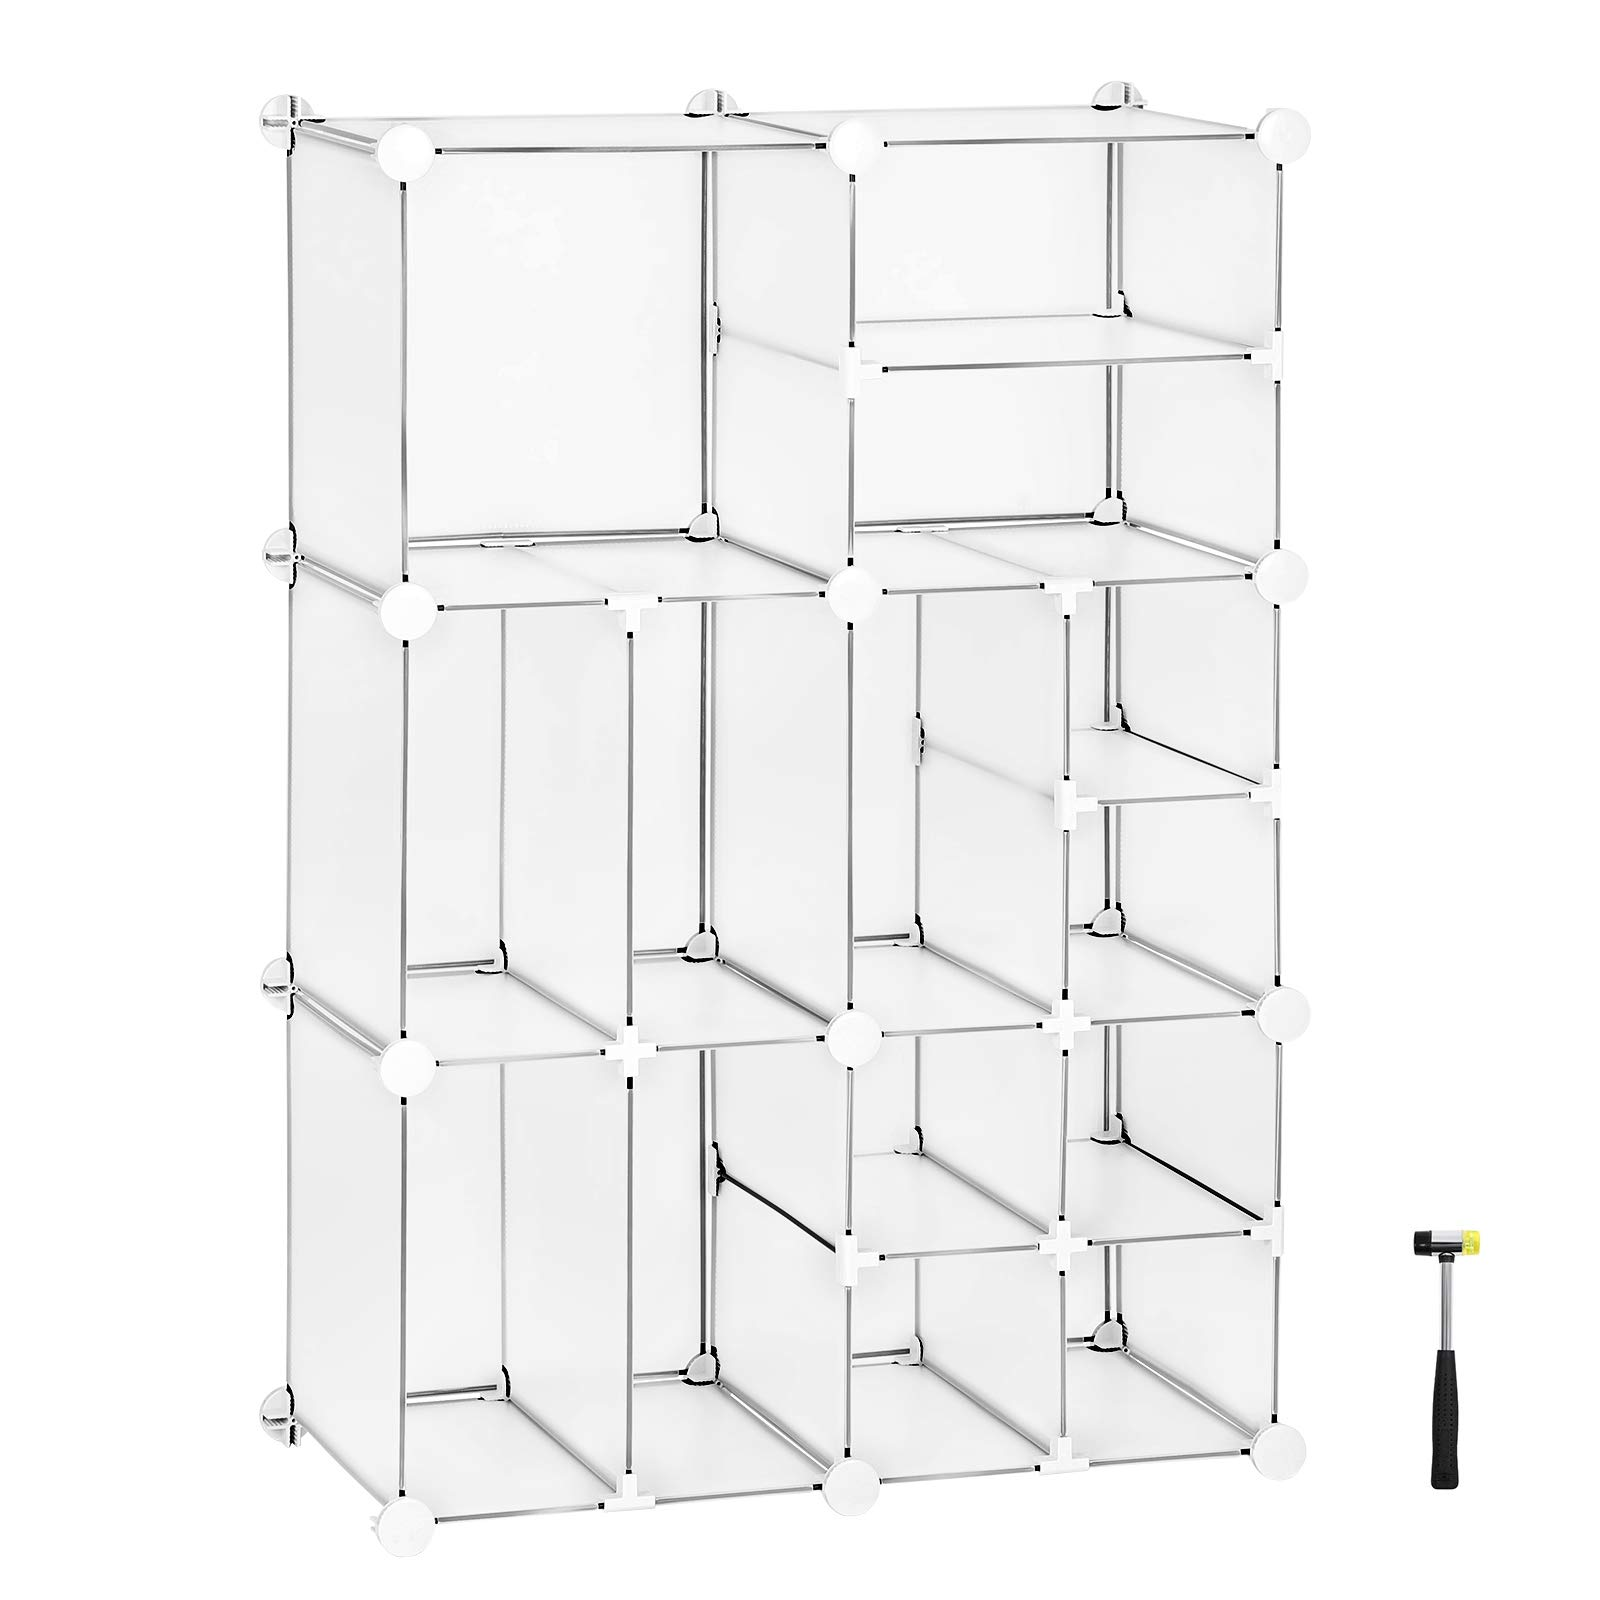 SONGMICS Cube Storage, Plastic Closet Organizer Unit, Space Saving Shelving Unit, Large and Small Style Design for Closet, Living Room, Clothes, Toys, 24.8 L x 12.2 W x 36.6 H Inches White ULPC601W by SONGMICS